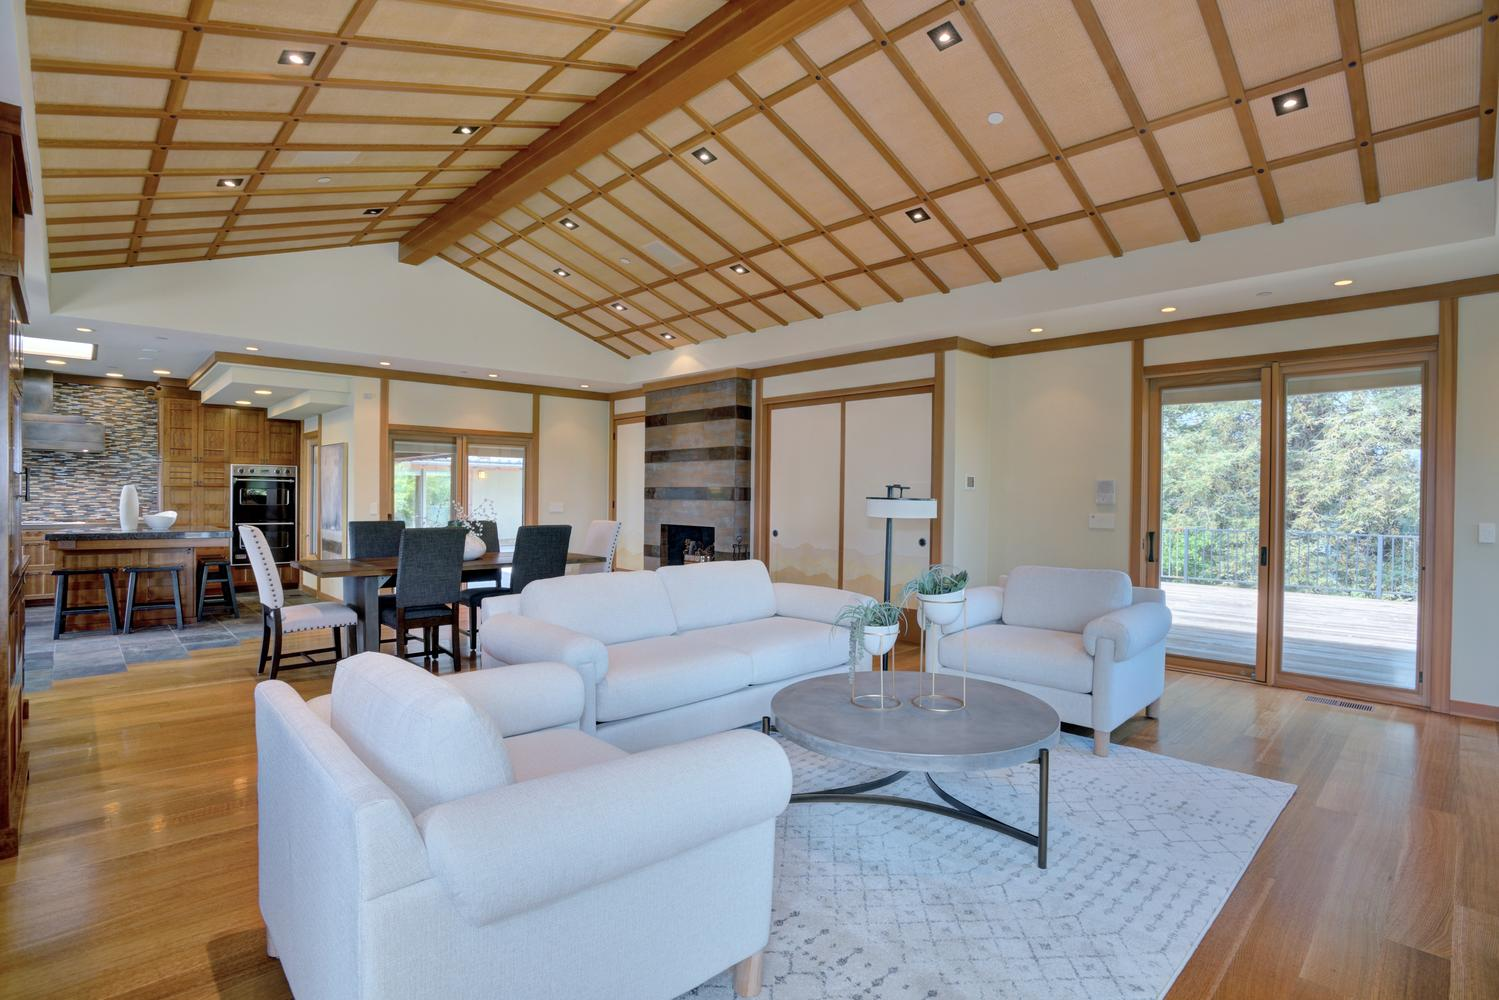 573 More Ave Los Gatos CA-large-011-16-Family Room View to Outside-1499x1000-72dpi.jpg